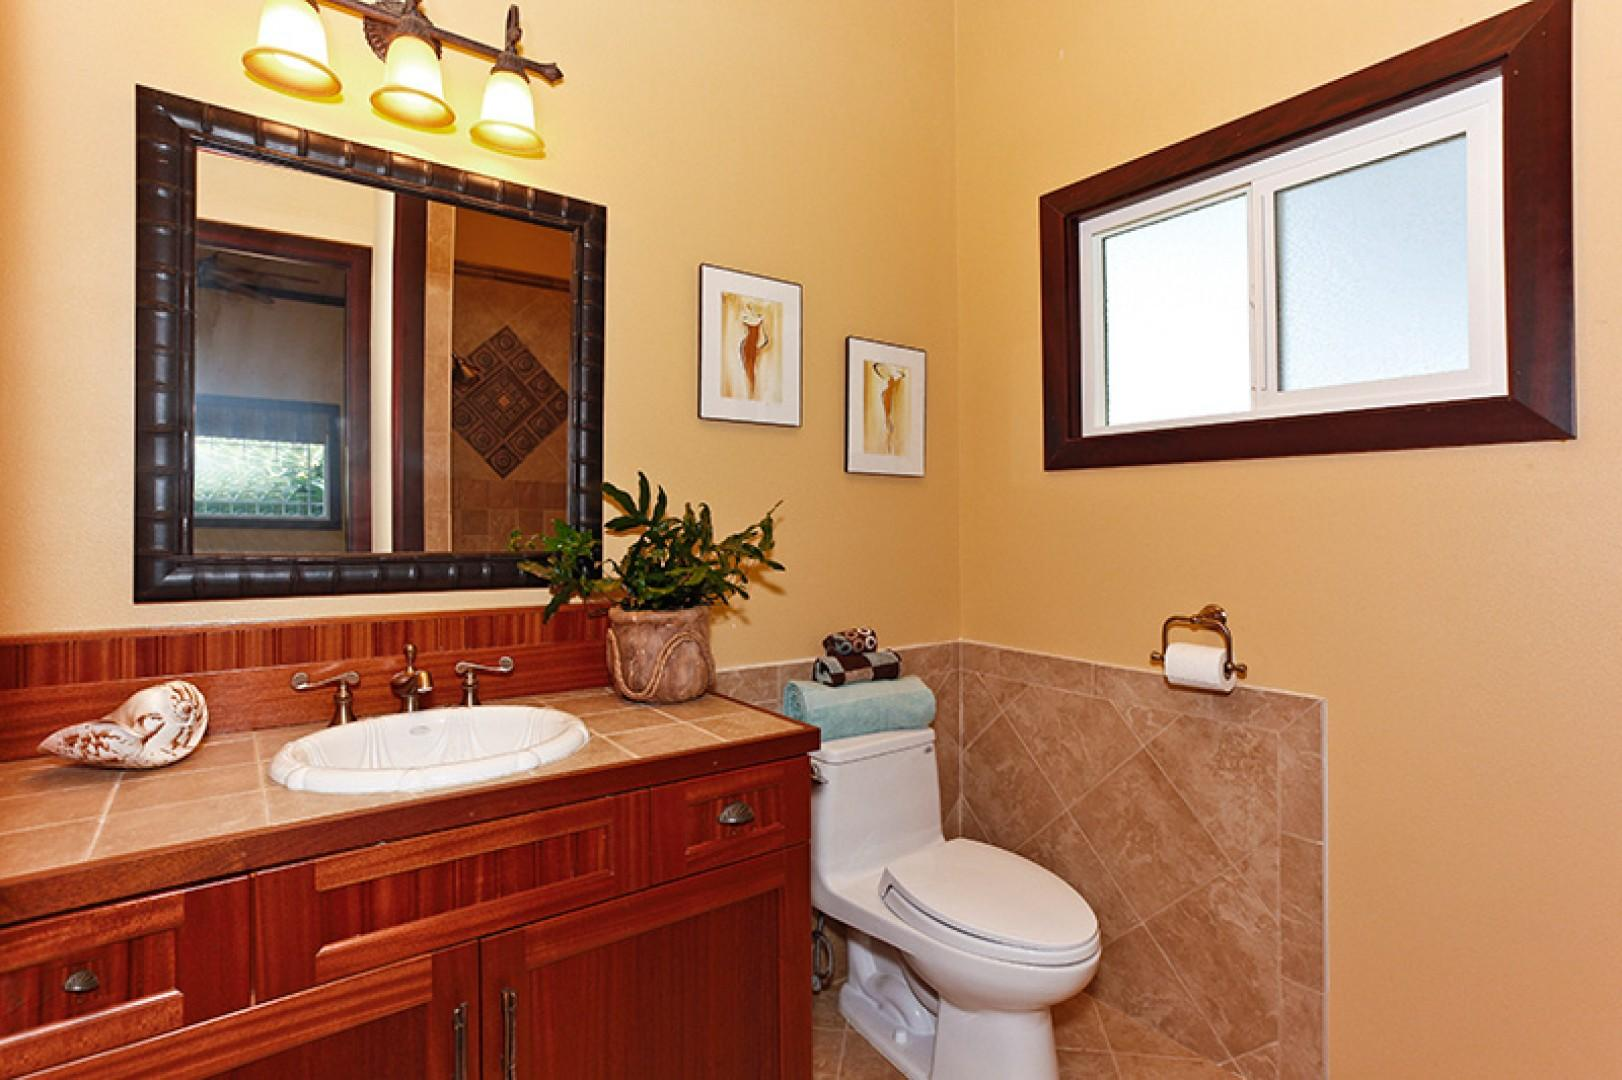 Shared guest bathroom for queen bedroom two and twin bedroom two.